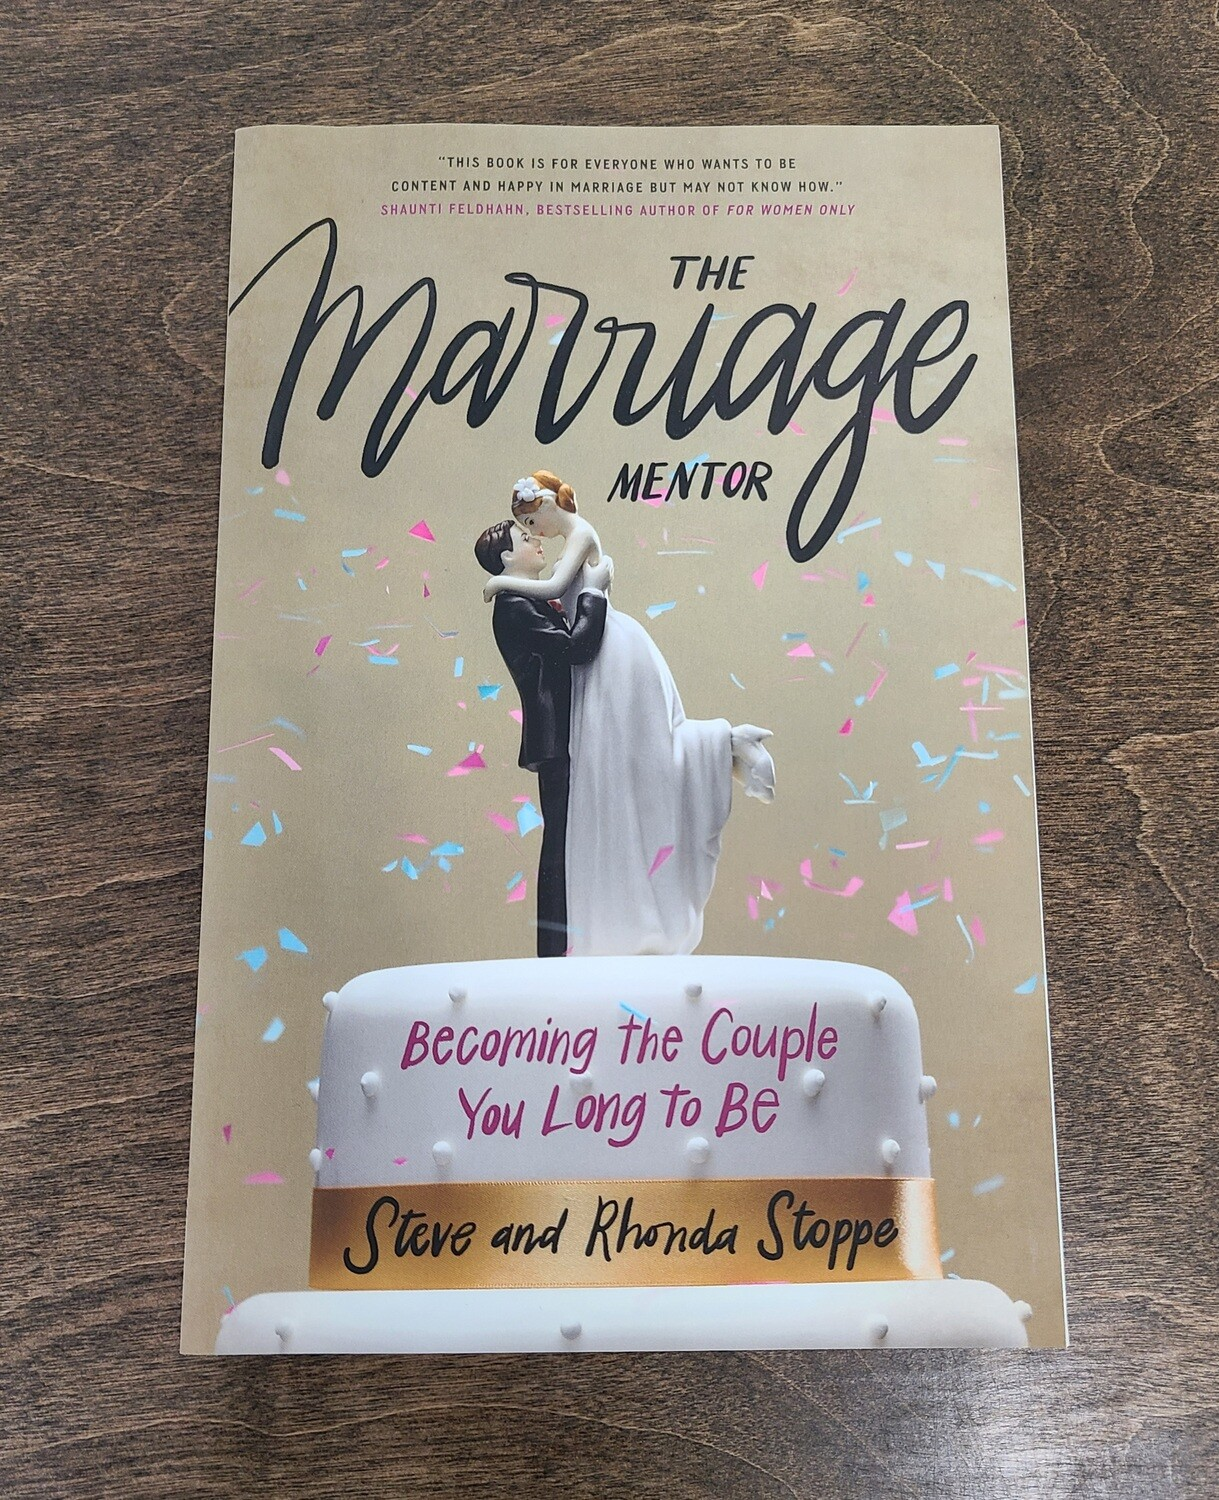 The Marriage Mentor: Becoming the Couple You Long to Be by Steve and Rhonda Stoppe